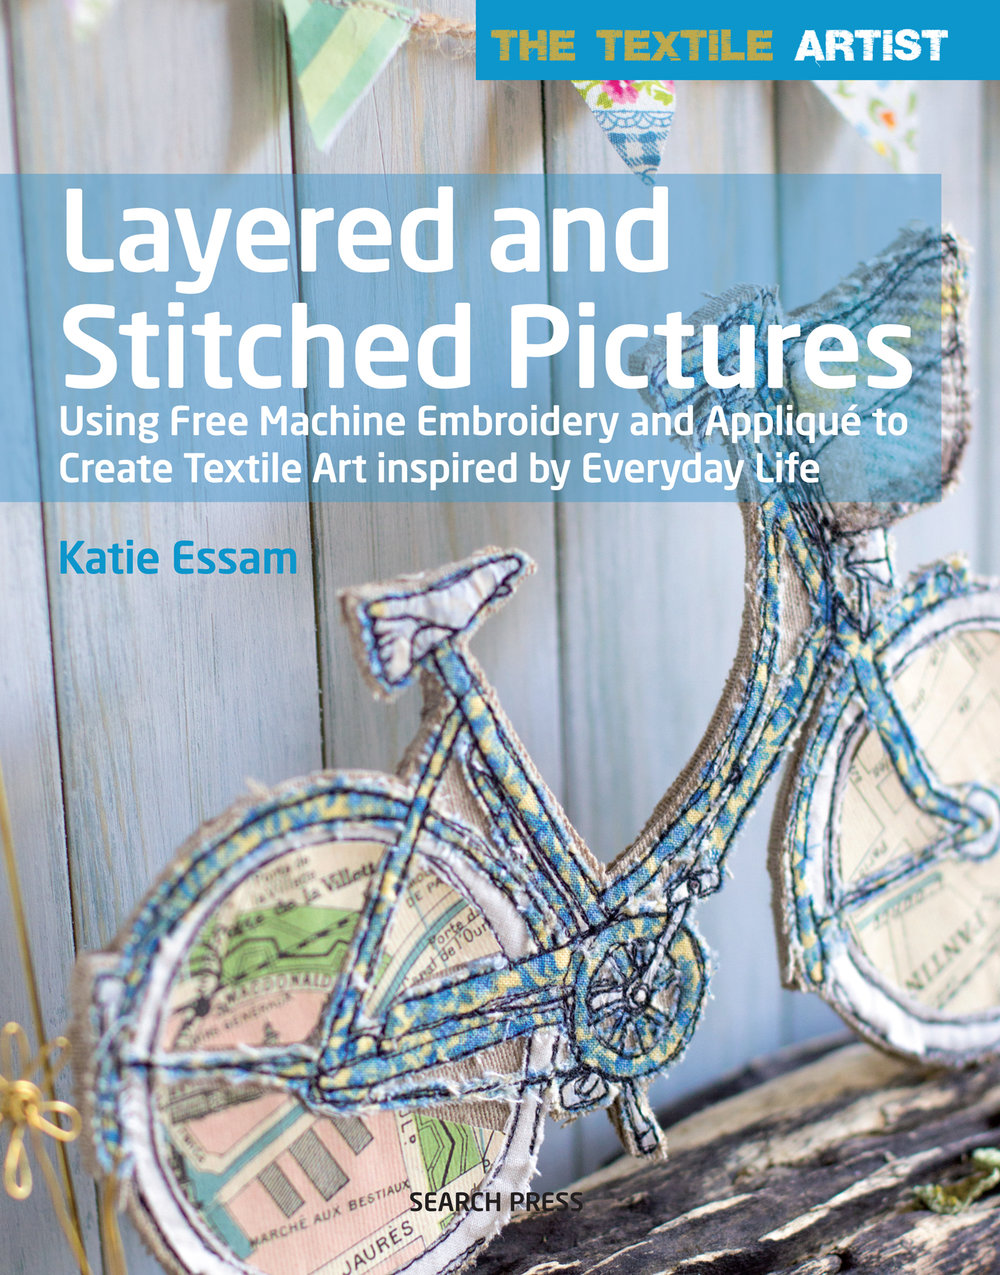 My New Book! - If you would like to learn how to make your own textile art, freehand machine embroider, applique and more. This book is for you, mixed mixed textiles in all it's glory, from inspiration, to design, even to framing and displaying your finished piece.Click the image for link